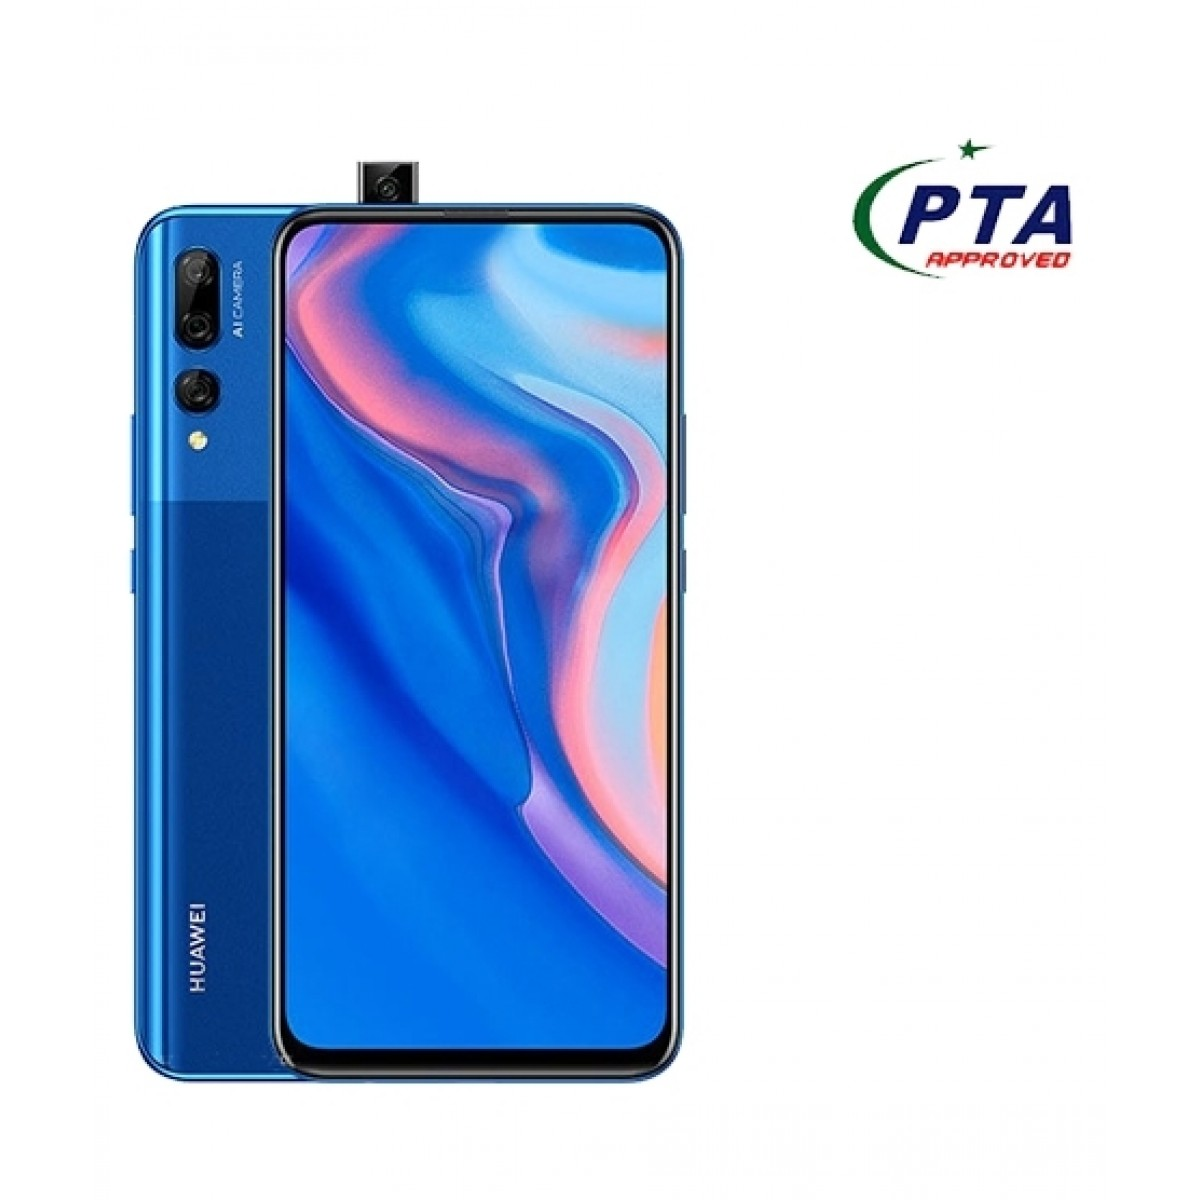 Huawei Y9 Prime 2019 4gb 128gb Price In Pakistan Vmart Pk